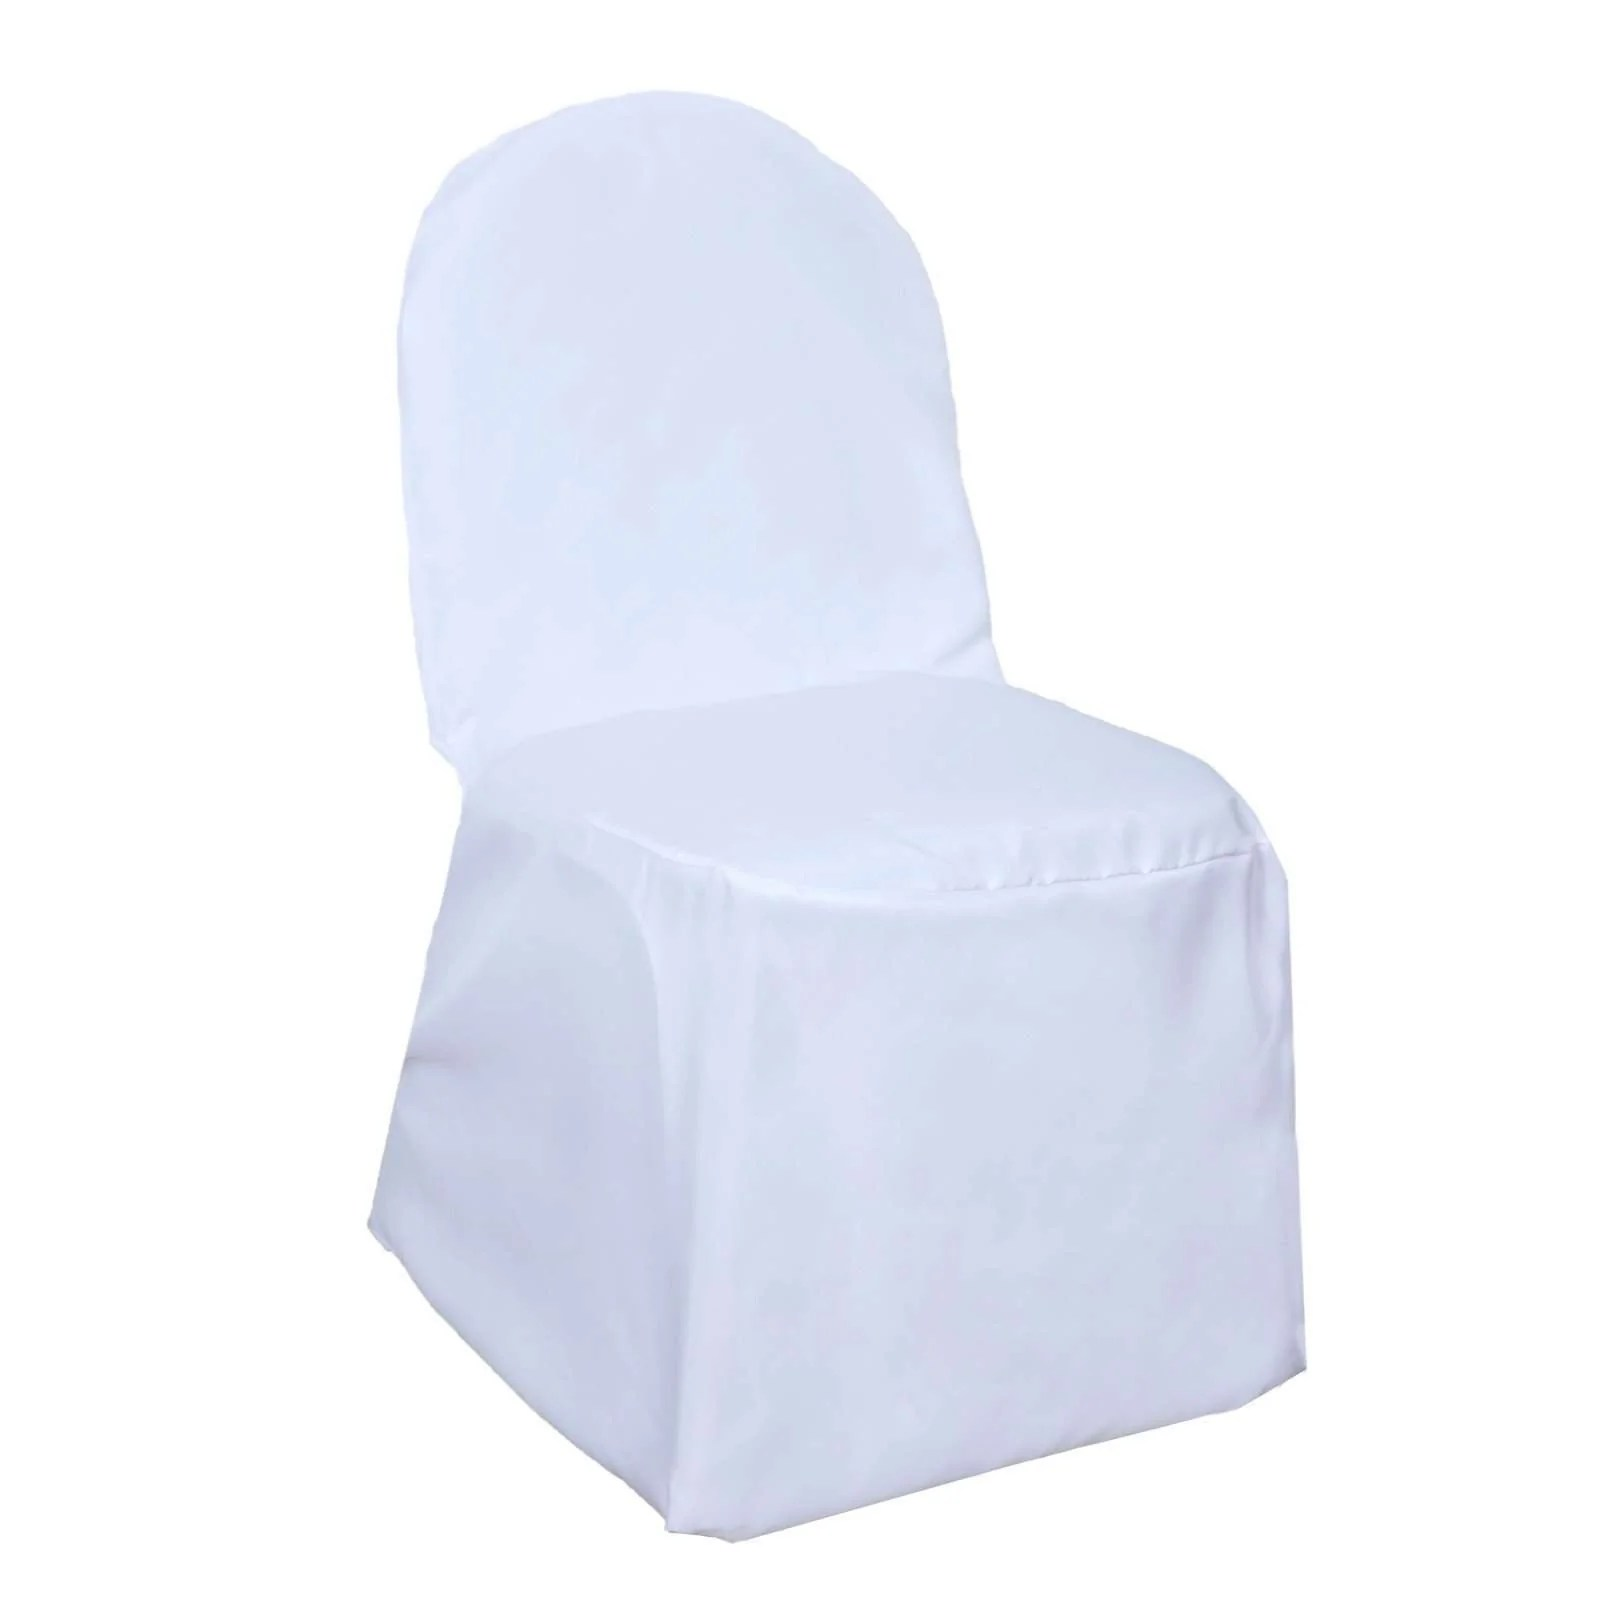 chair covers wholesale uk space saver recliner chairs 150 polyester banquet wedding reception party